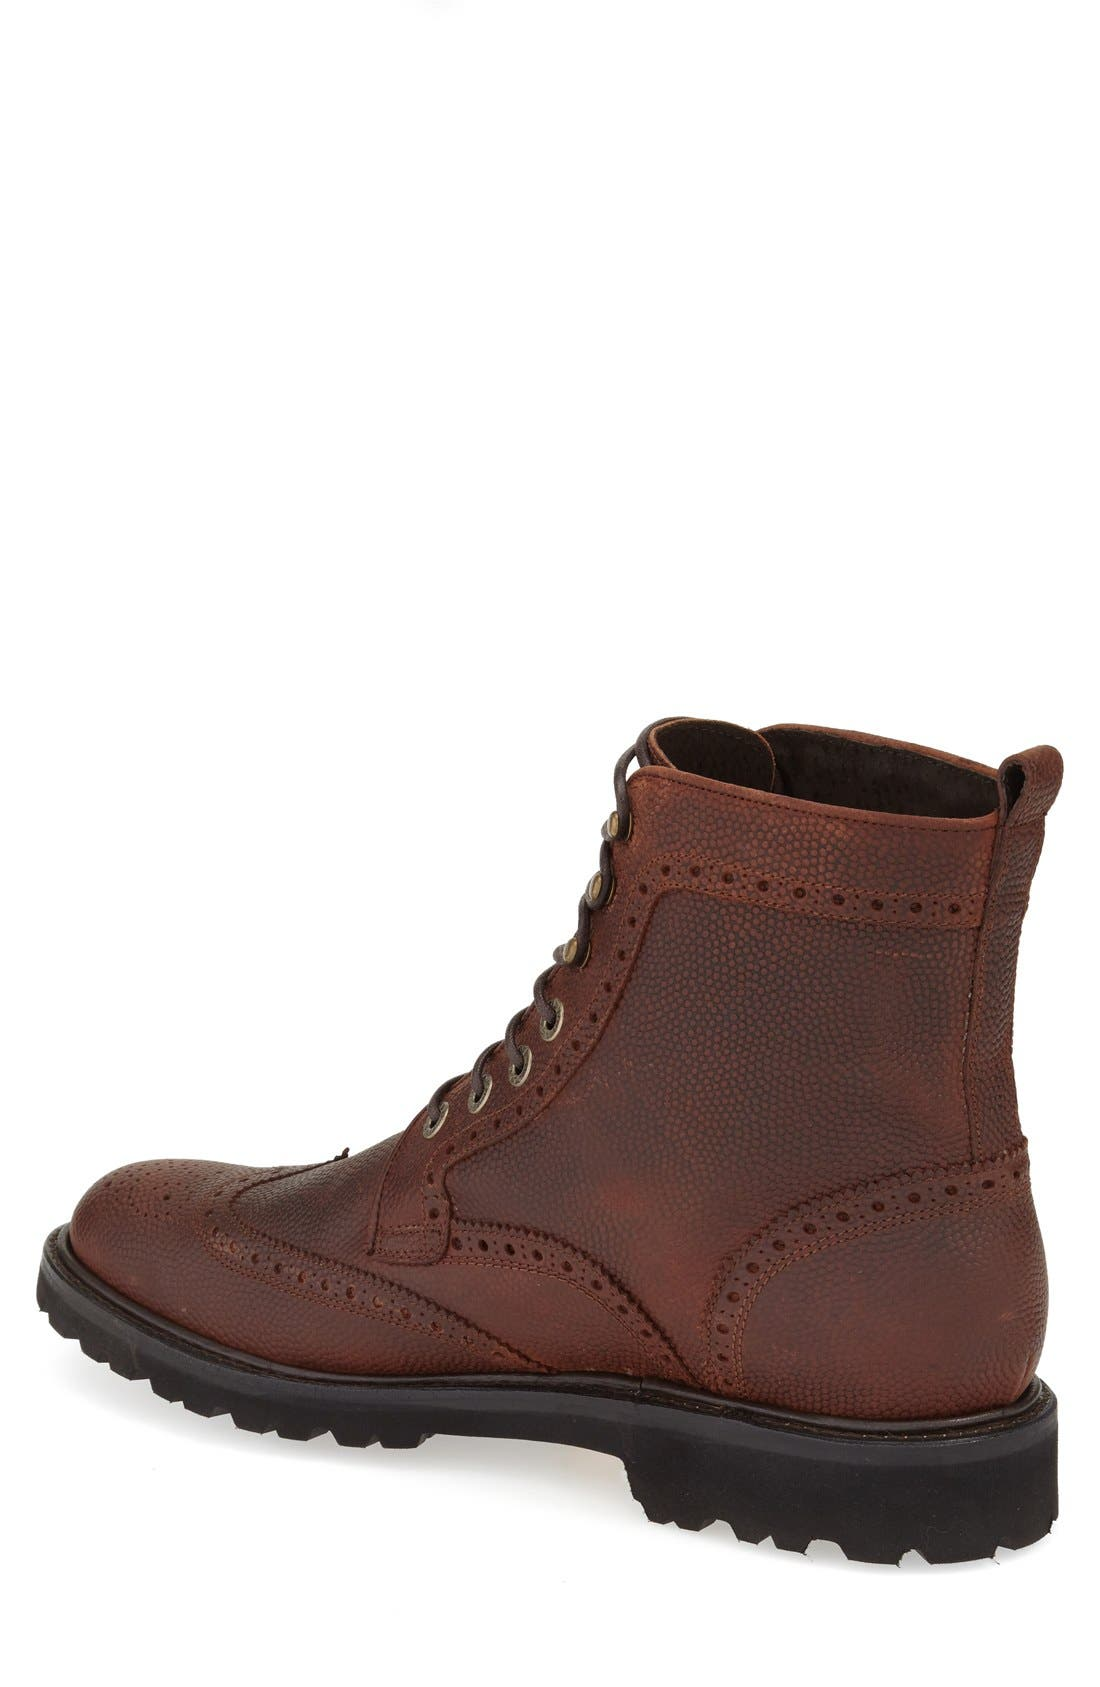 WOLVERINE,                             'Percy' Wingtip Boot,                             Alternate thumbnail 2, color,                             200